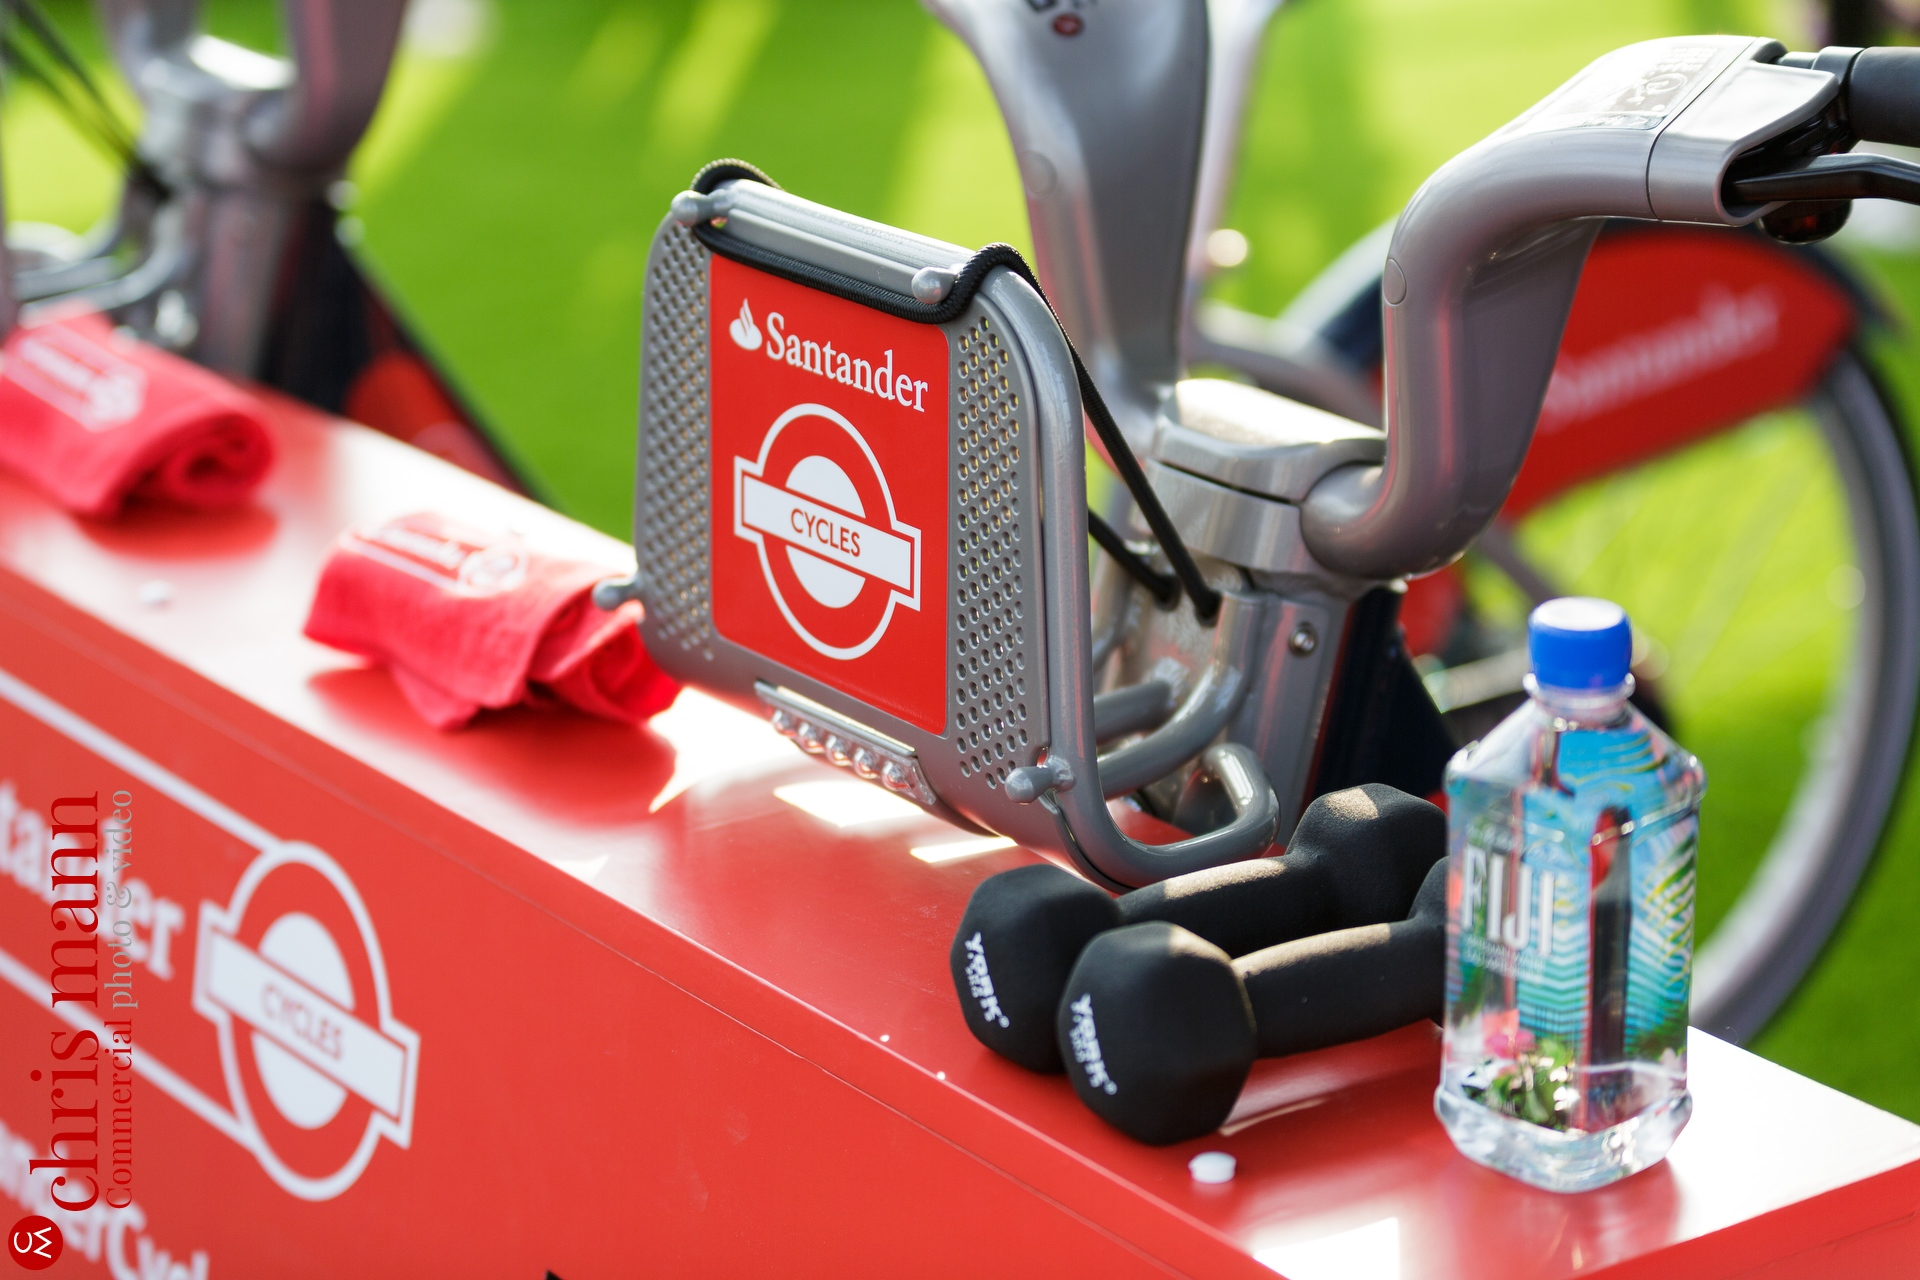 Santander-Cycles-spin-up-class-The-Shard-006